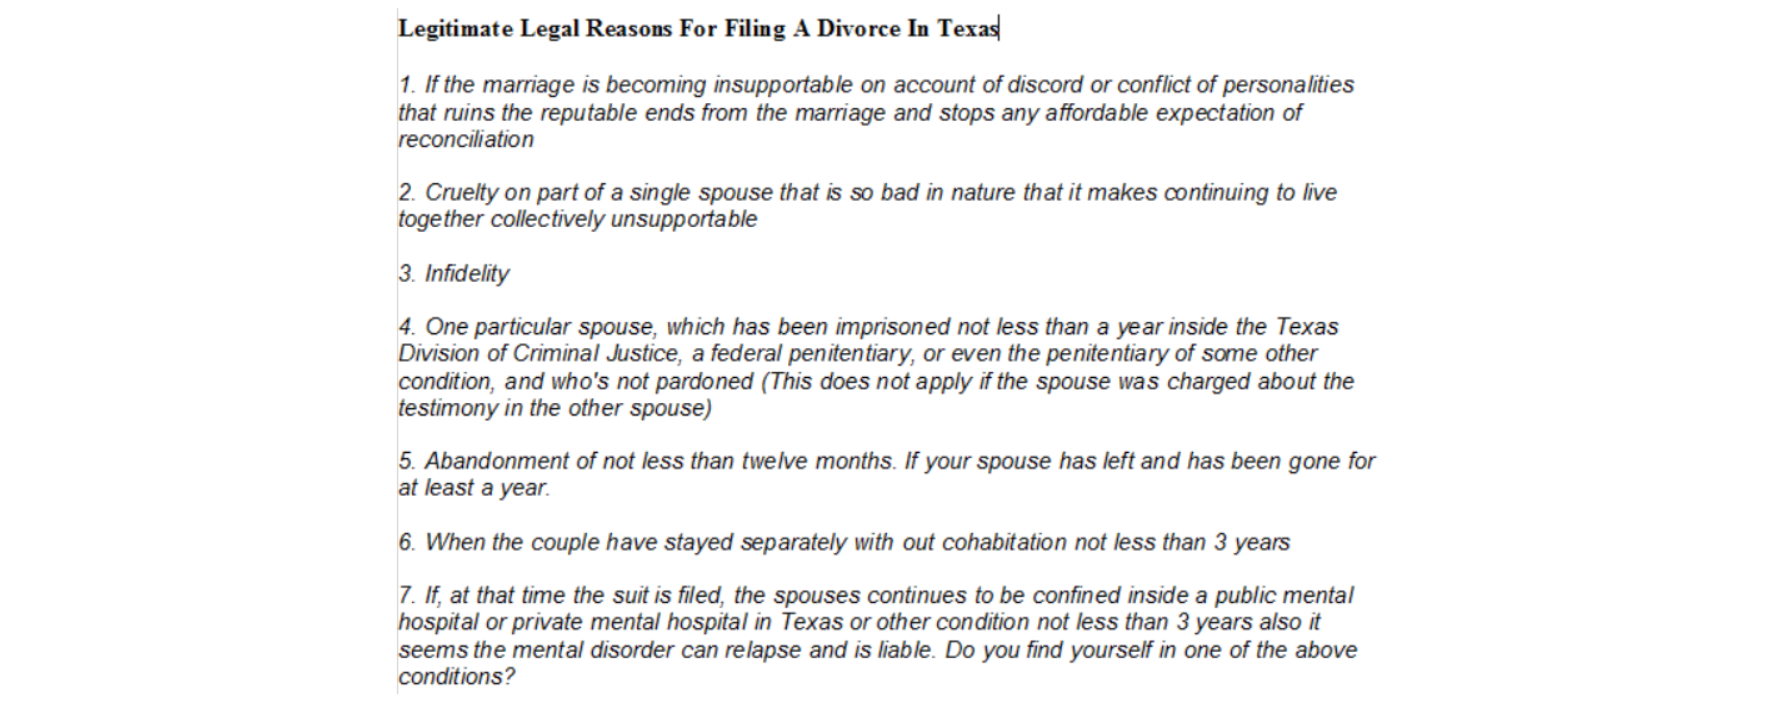 Contested divorce in texas rowlett tx find yourself in one of the above circumstances do you need a free consultation with a lawyer click the link below to get started solutioingenieria Image collections